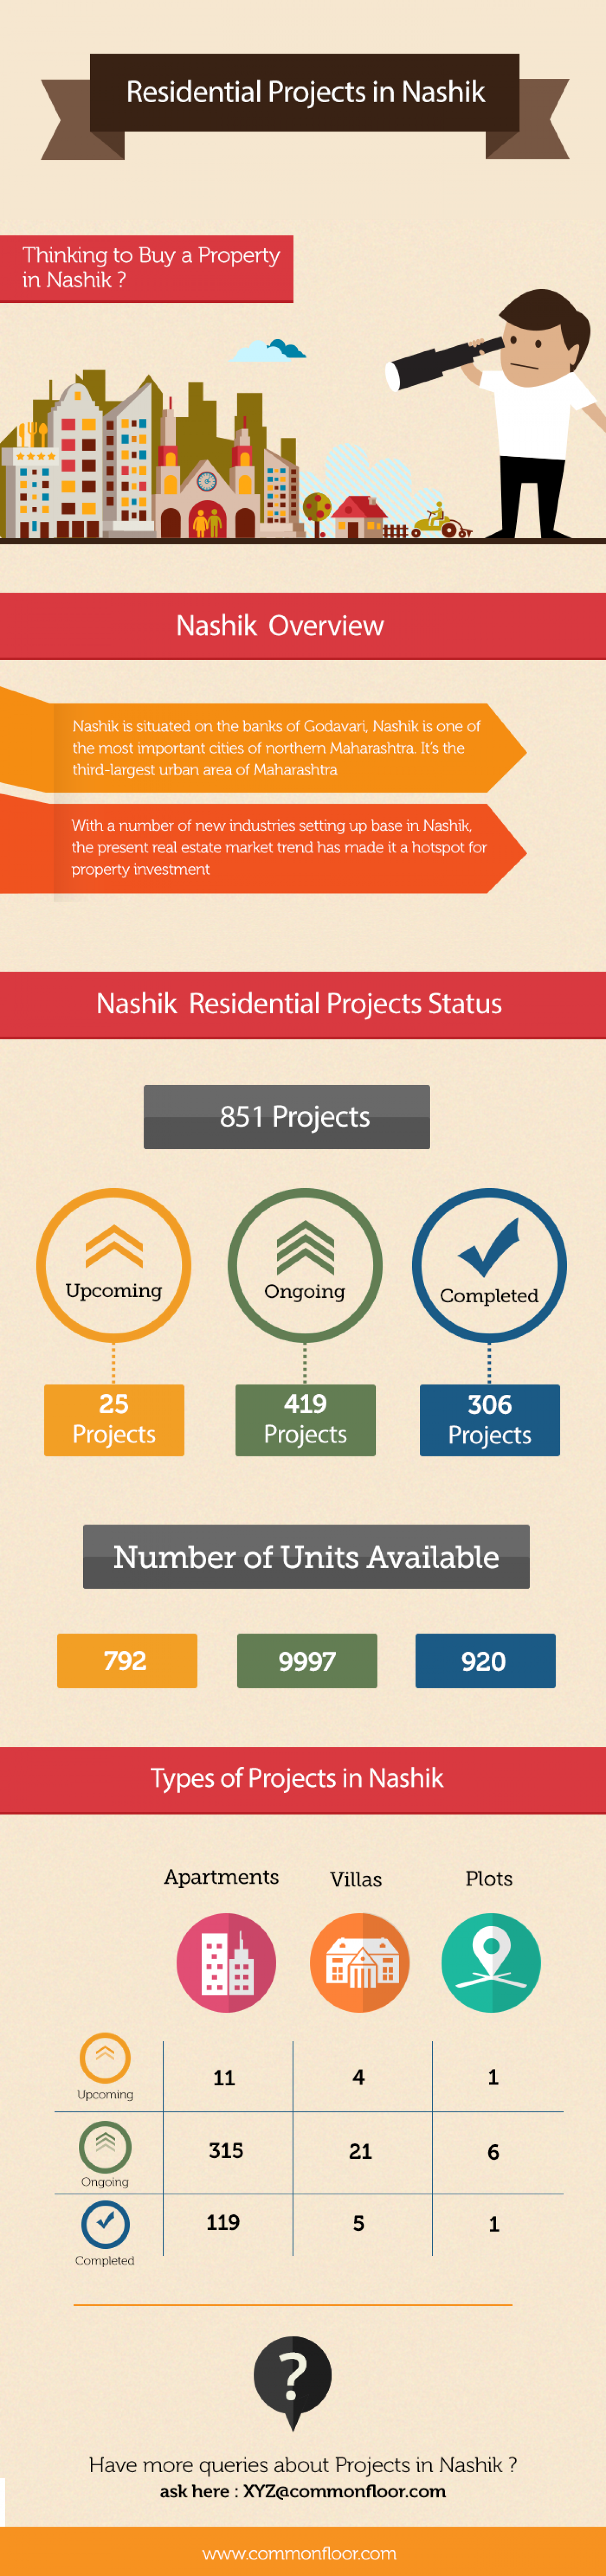 Residential Projects in Nashik Infographic